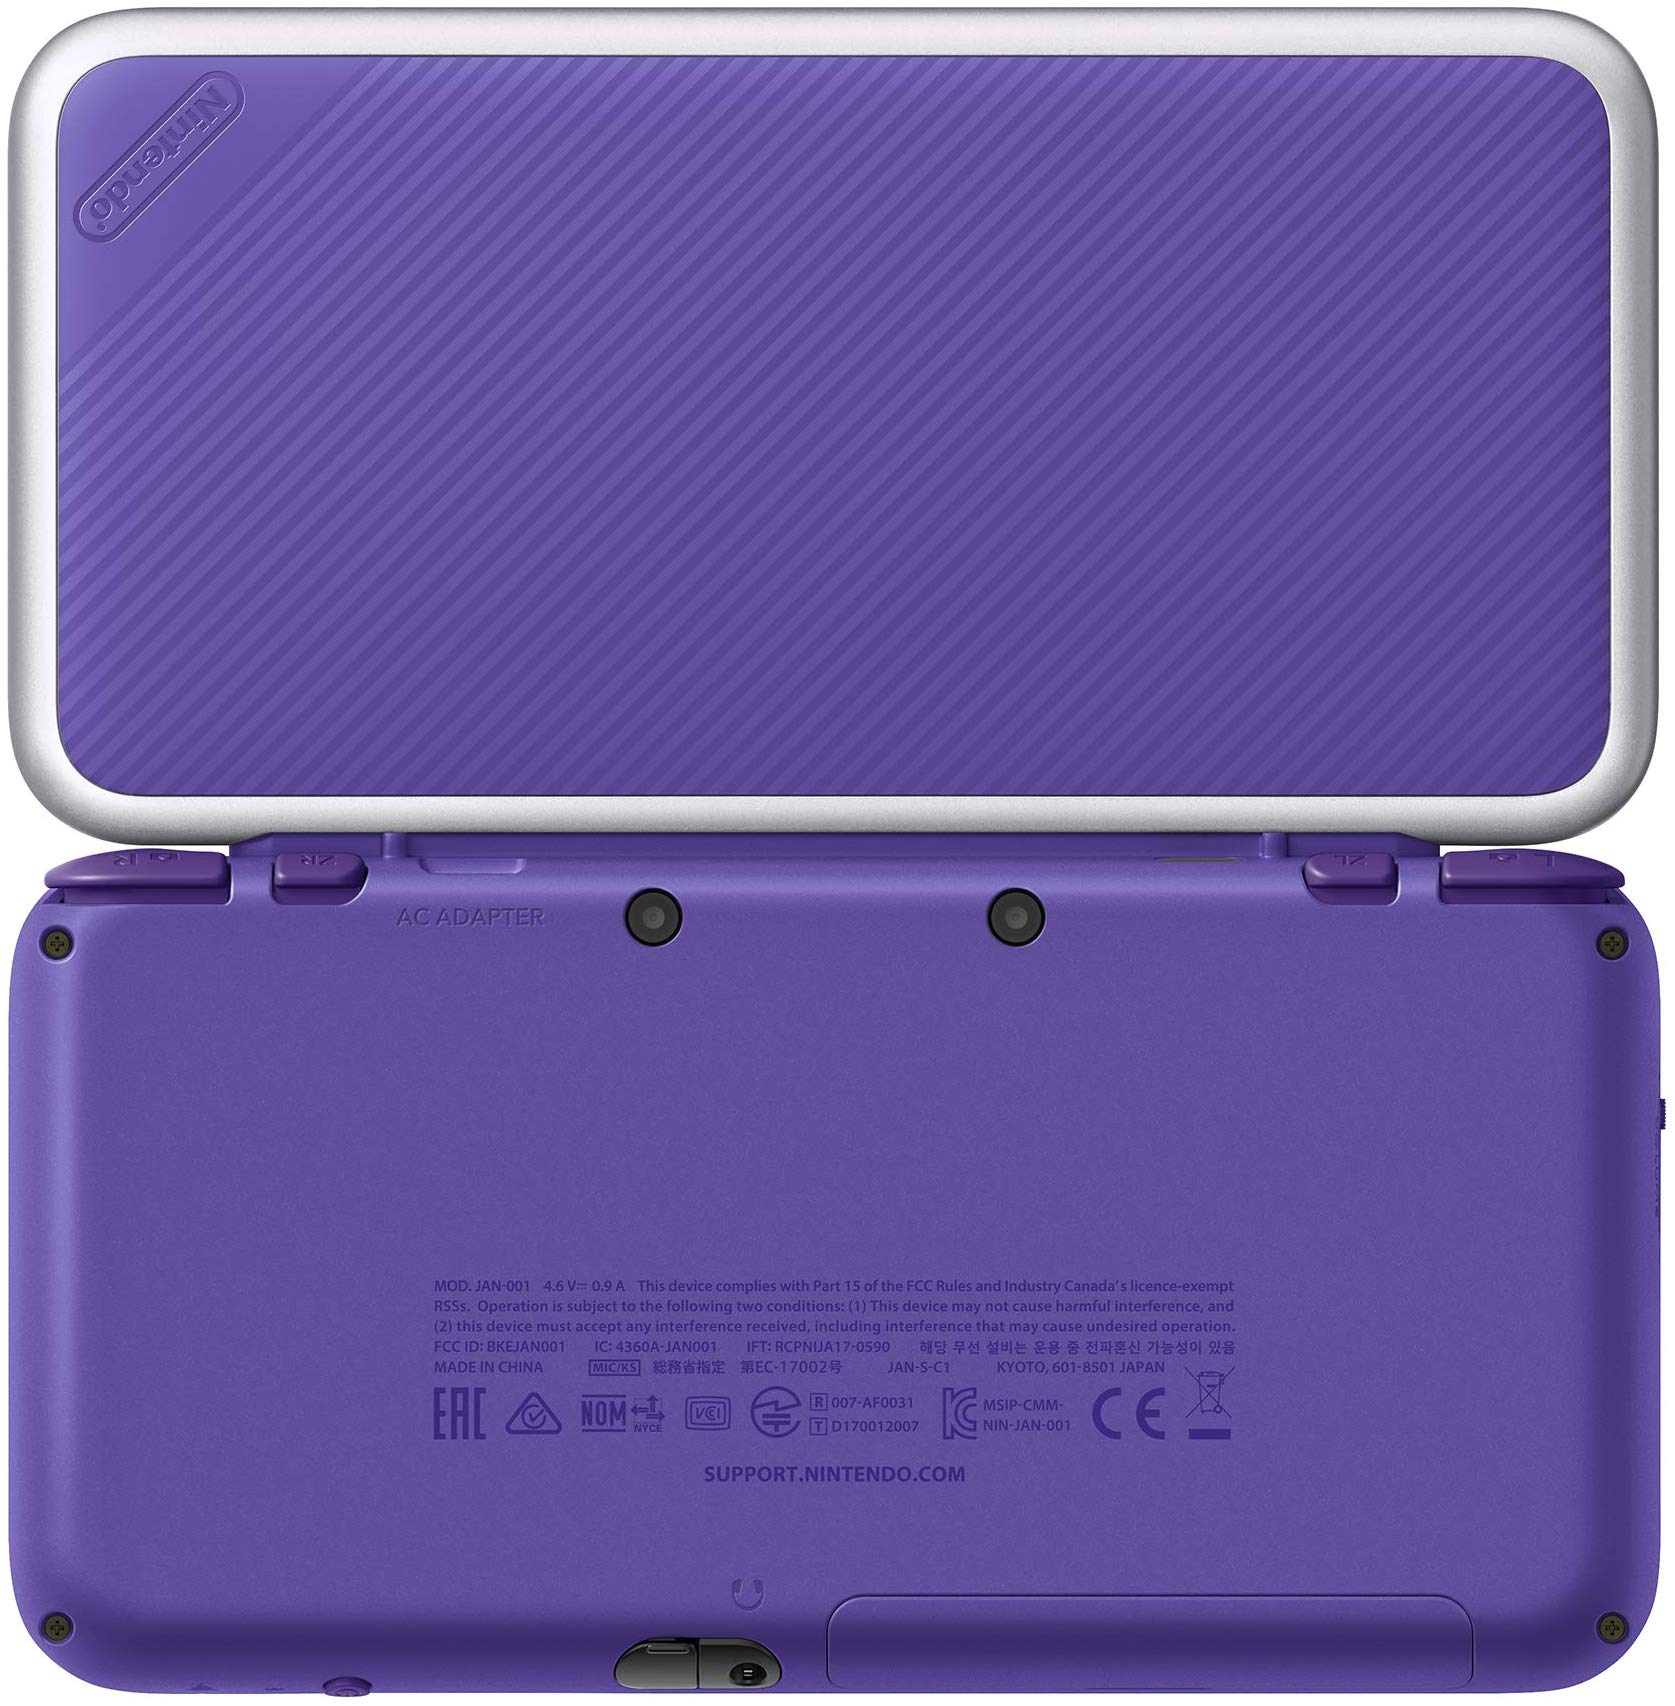 Photos Of The Purple Silver New 2ds Xl Nintendo Everything